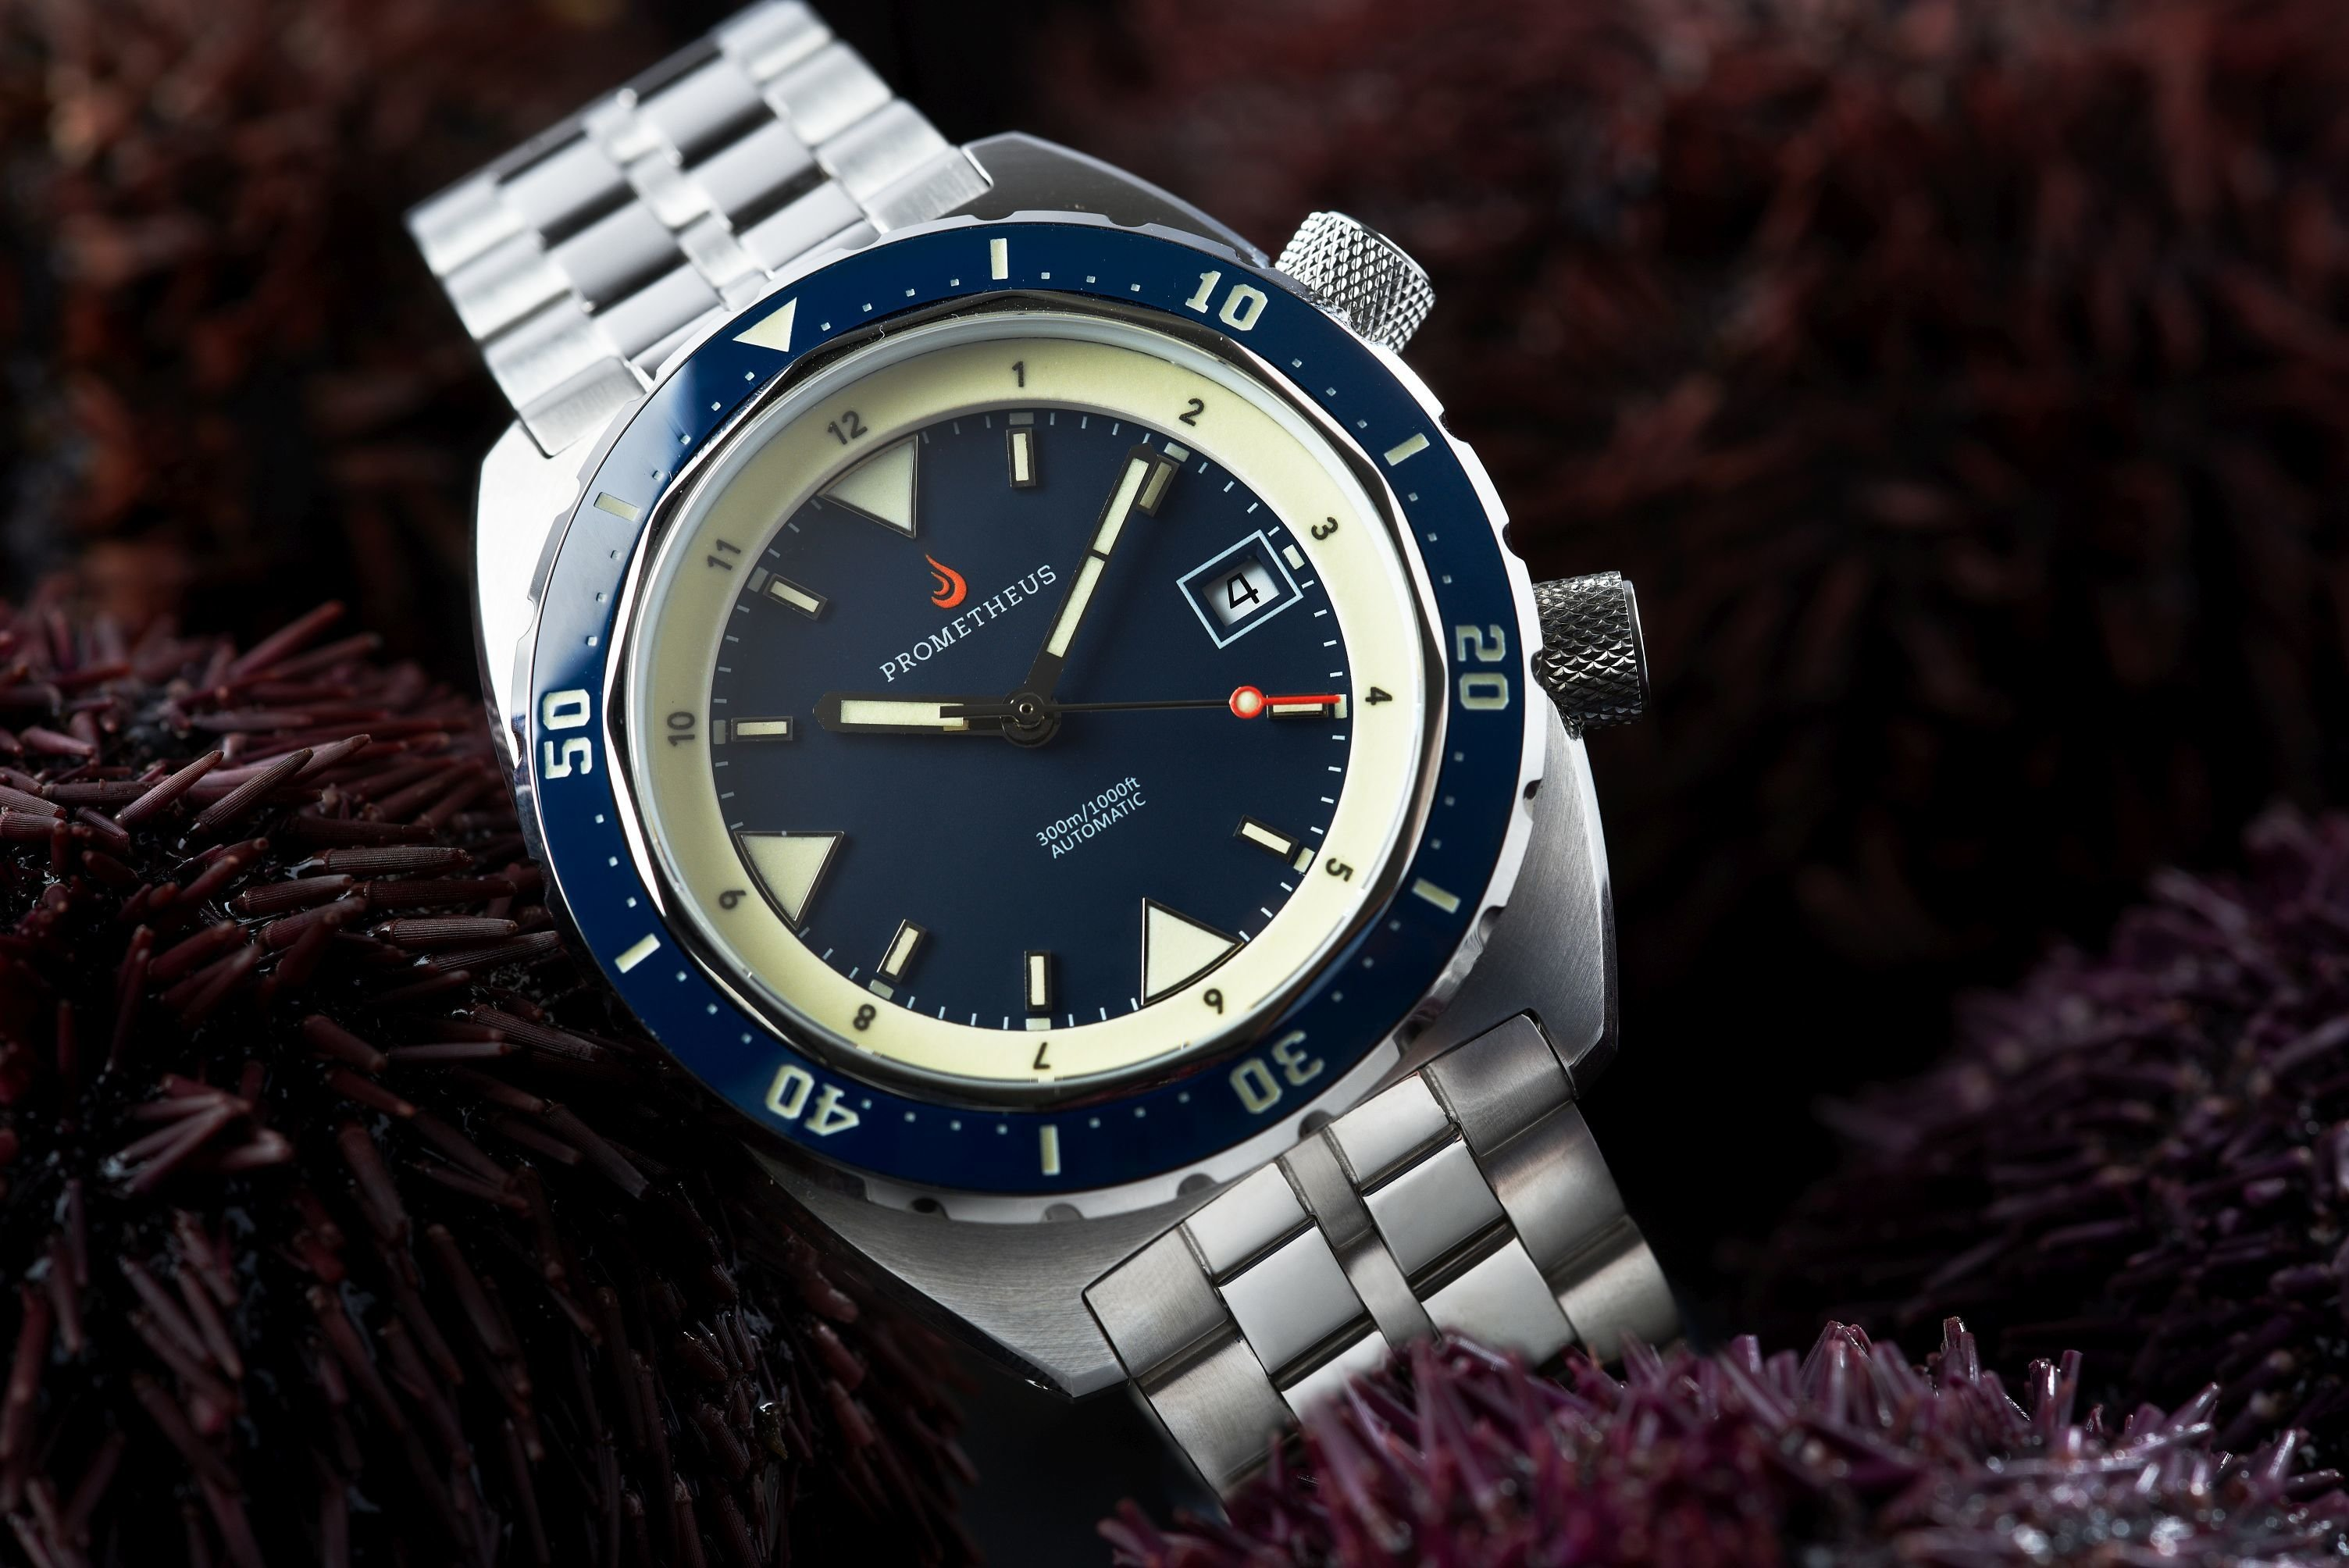 Pre-Order Prometheus Eagle Ray Version 5B ETA 2824 Blue Dial Date C3X1 Superluminova